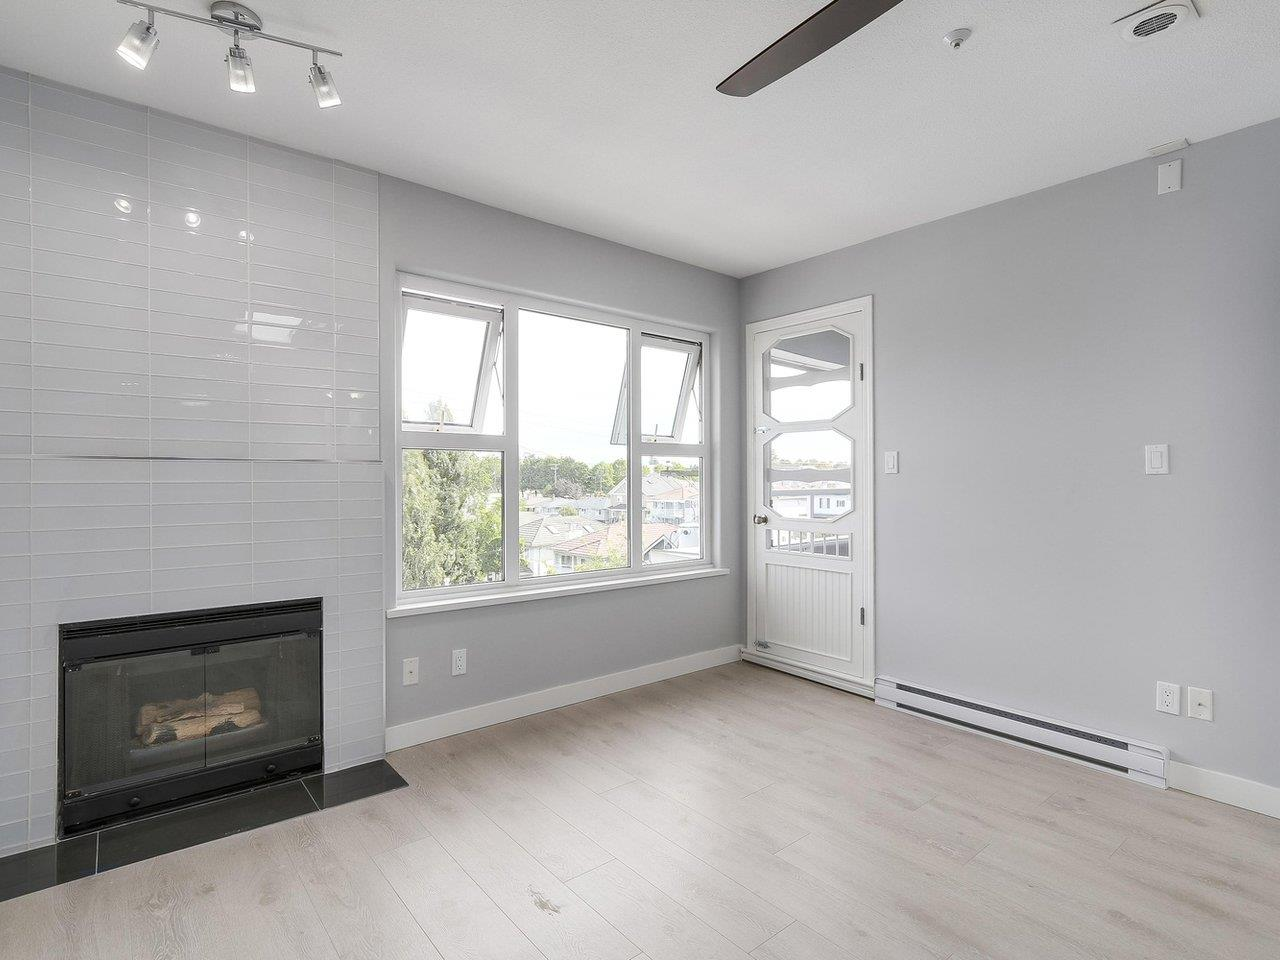 Condo Apartment at 312 4893 CLARENDON STREET, Unit 312, Vancouver East, British Columbia. Image 4